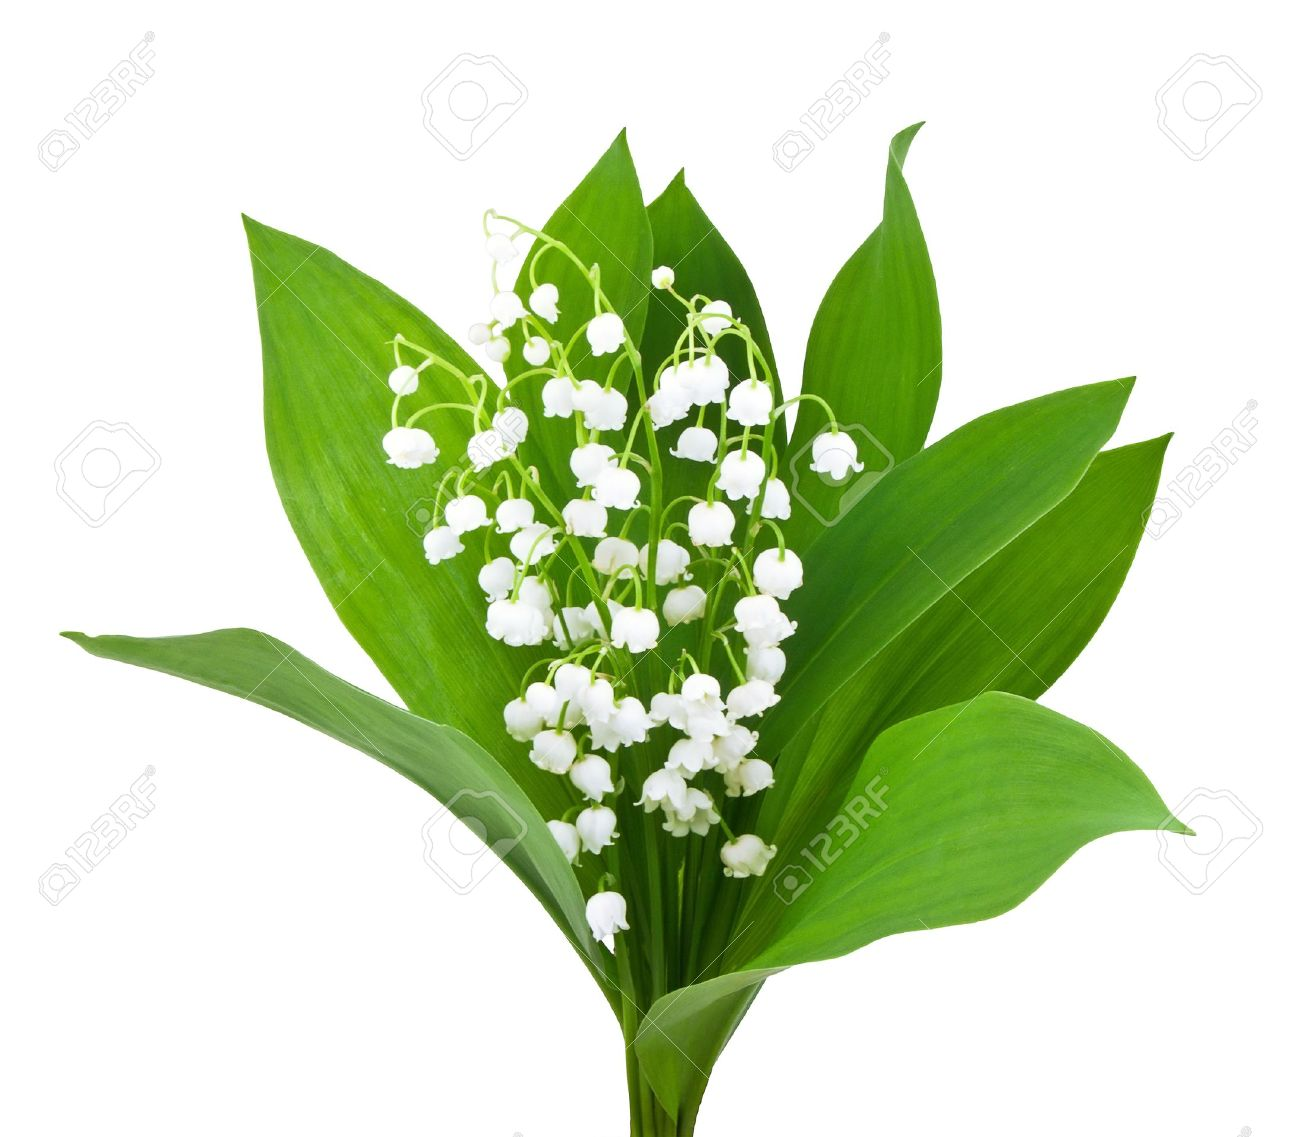 Lily of the valley stock photos royalty free lily of the valley images beautiful lilies of the valley isolated on white izmirmasajfo